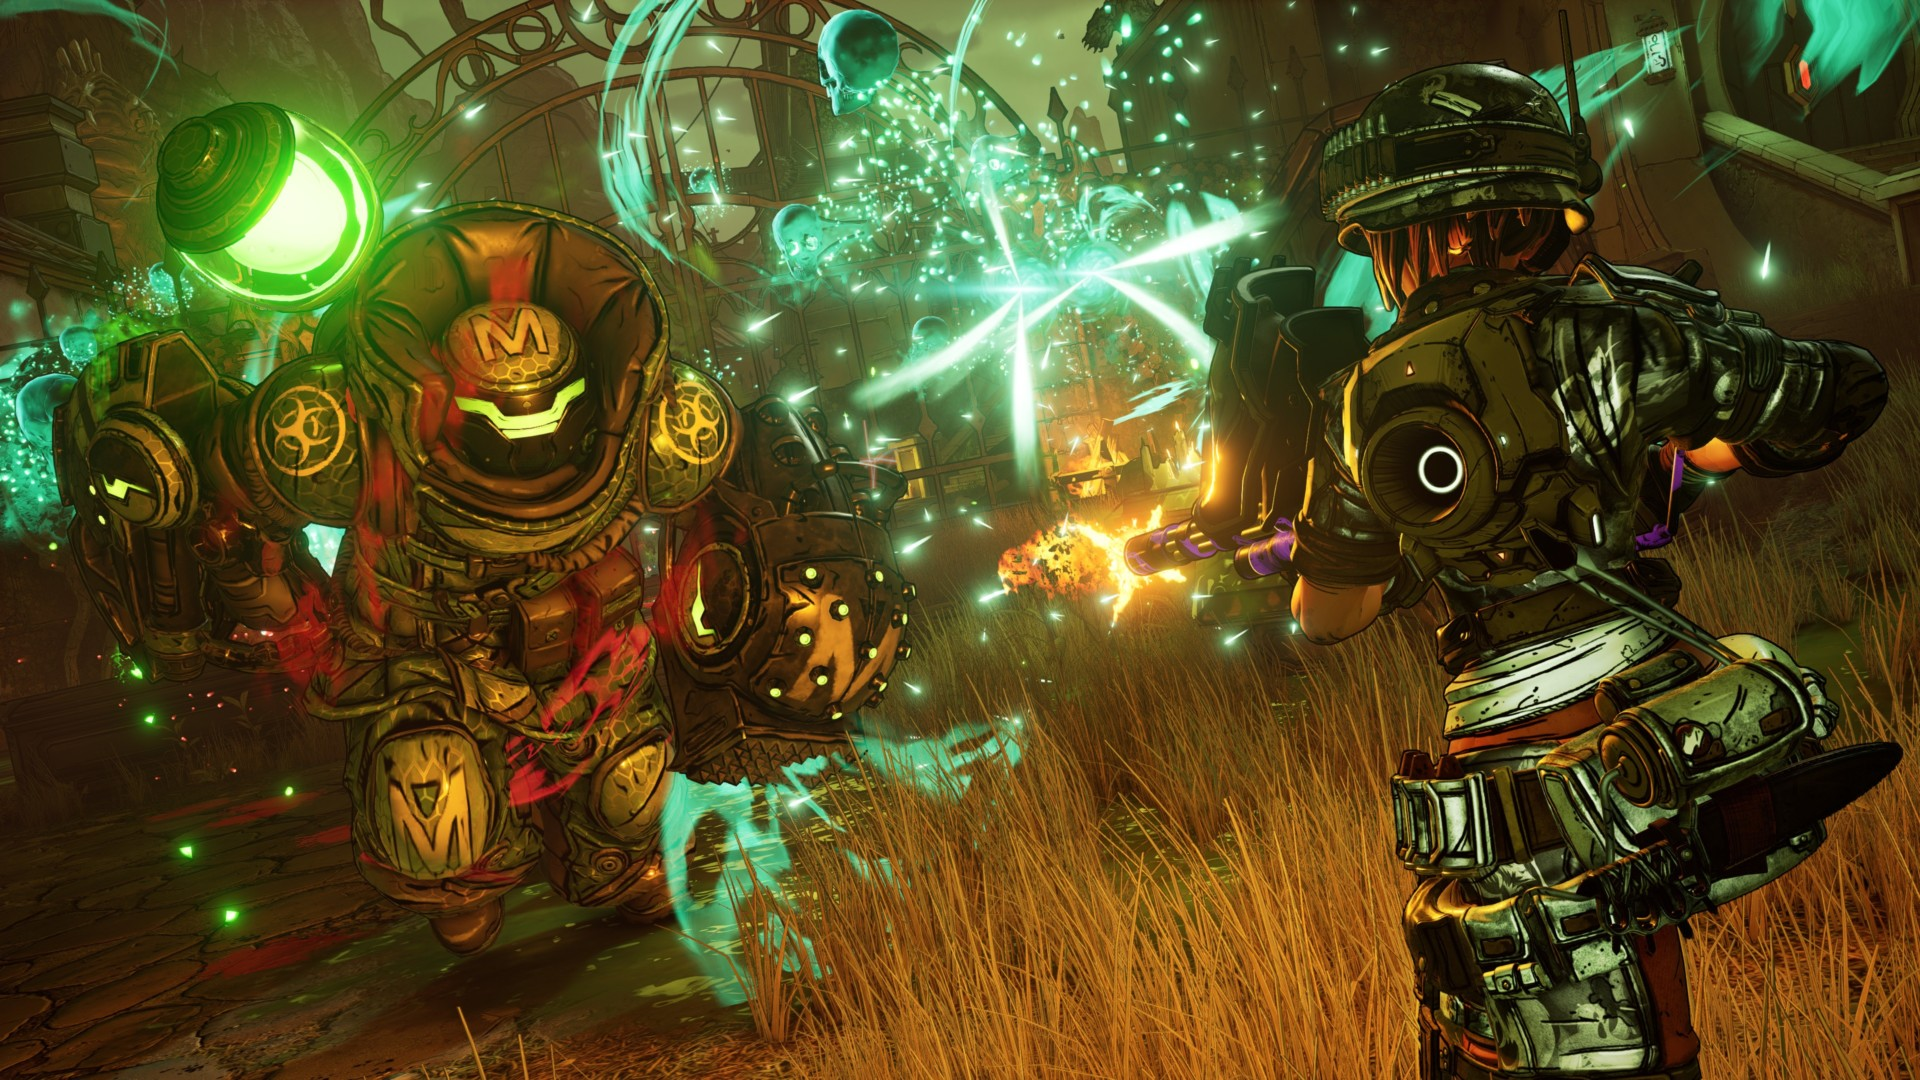 The Borderlands 3 Bloody Harvest challenge starts its reign of terror today